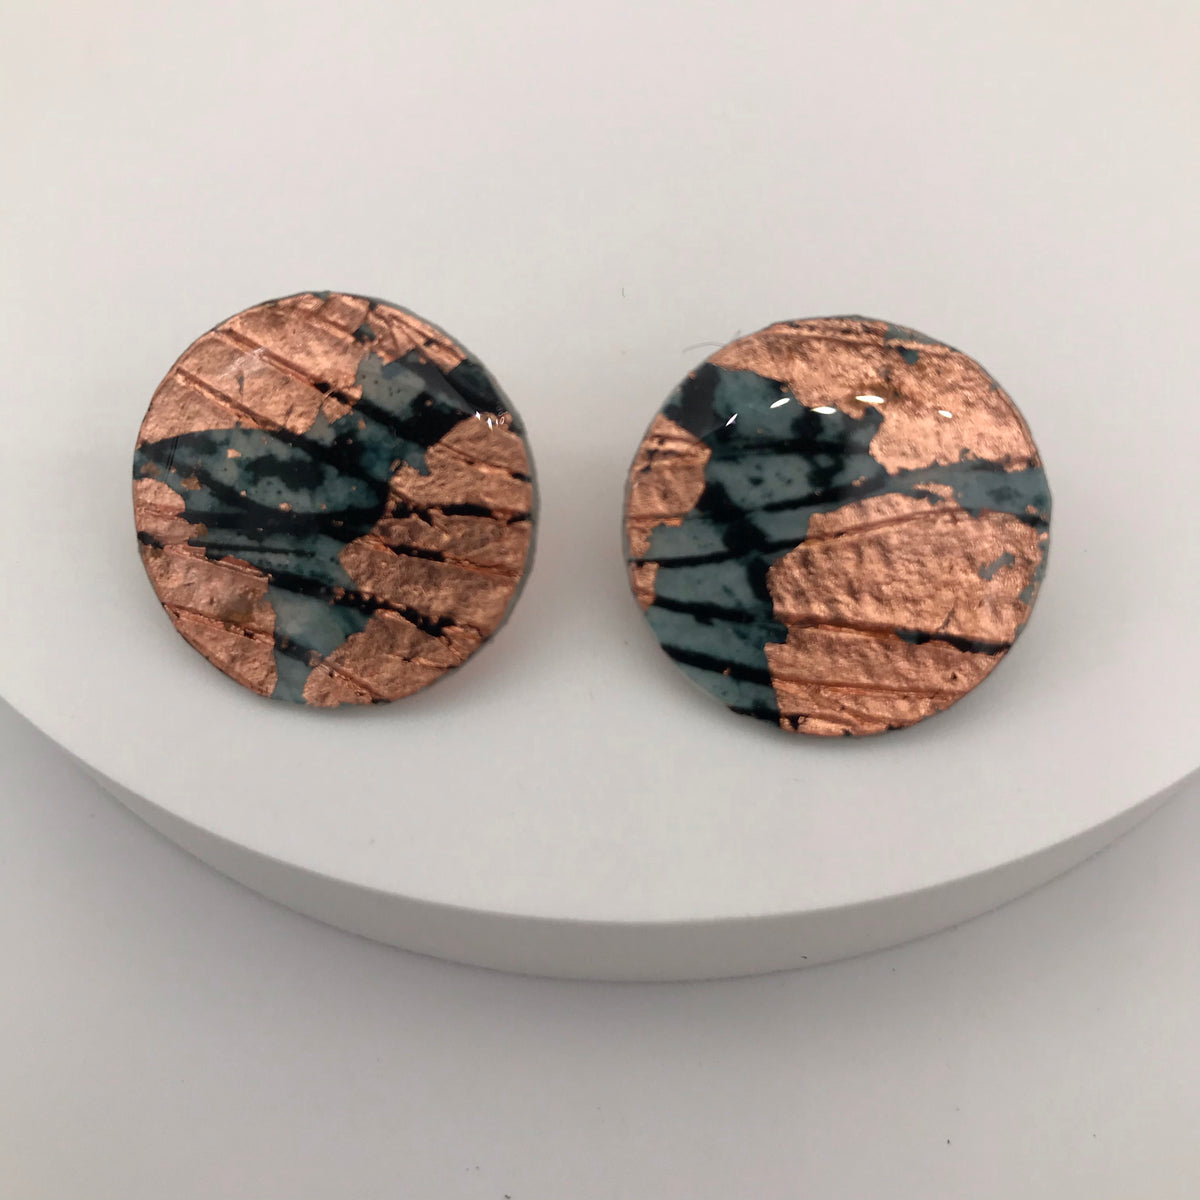 Ró sgraffito earrings in rose-gold/indigo